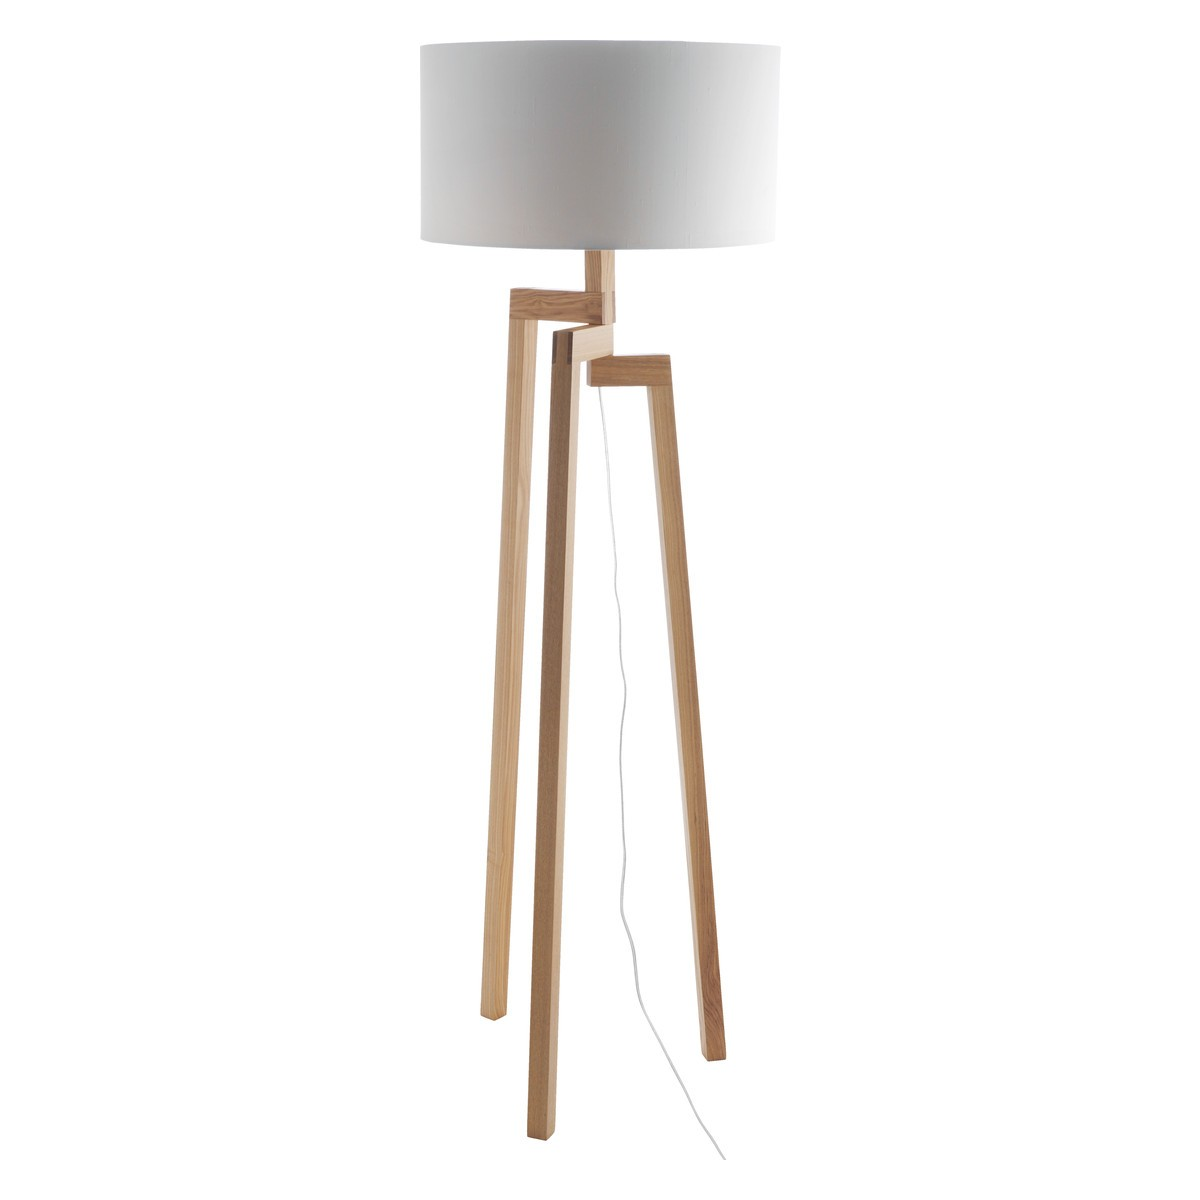 White wooden floor lamp feeling of symmetry and for Make wooden floor lamp